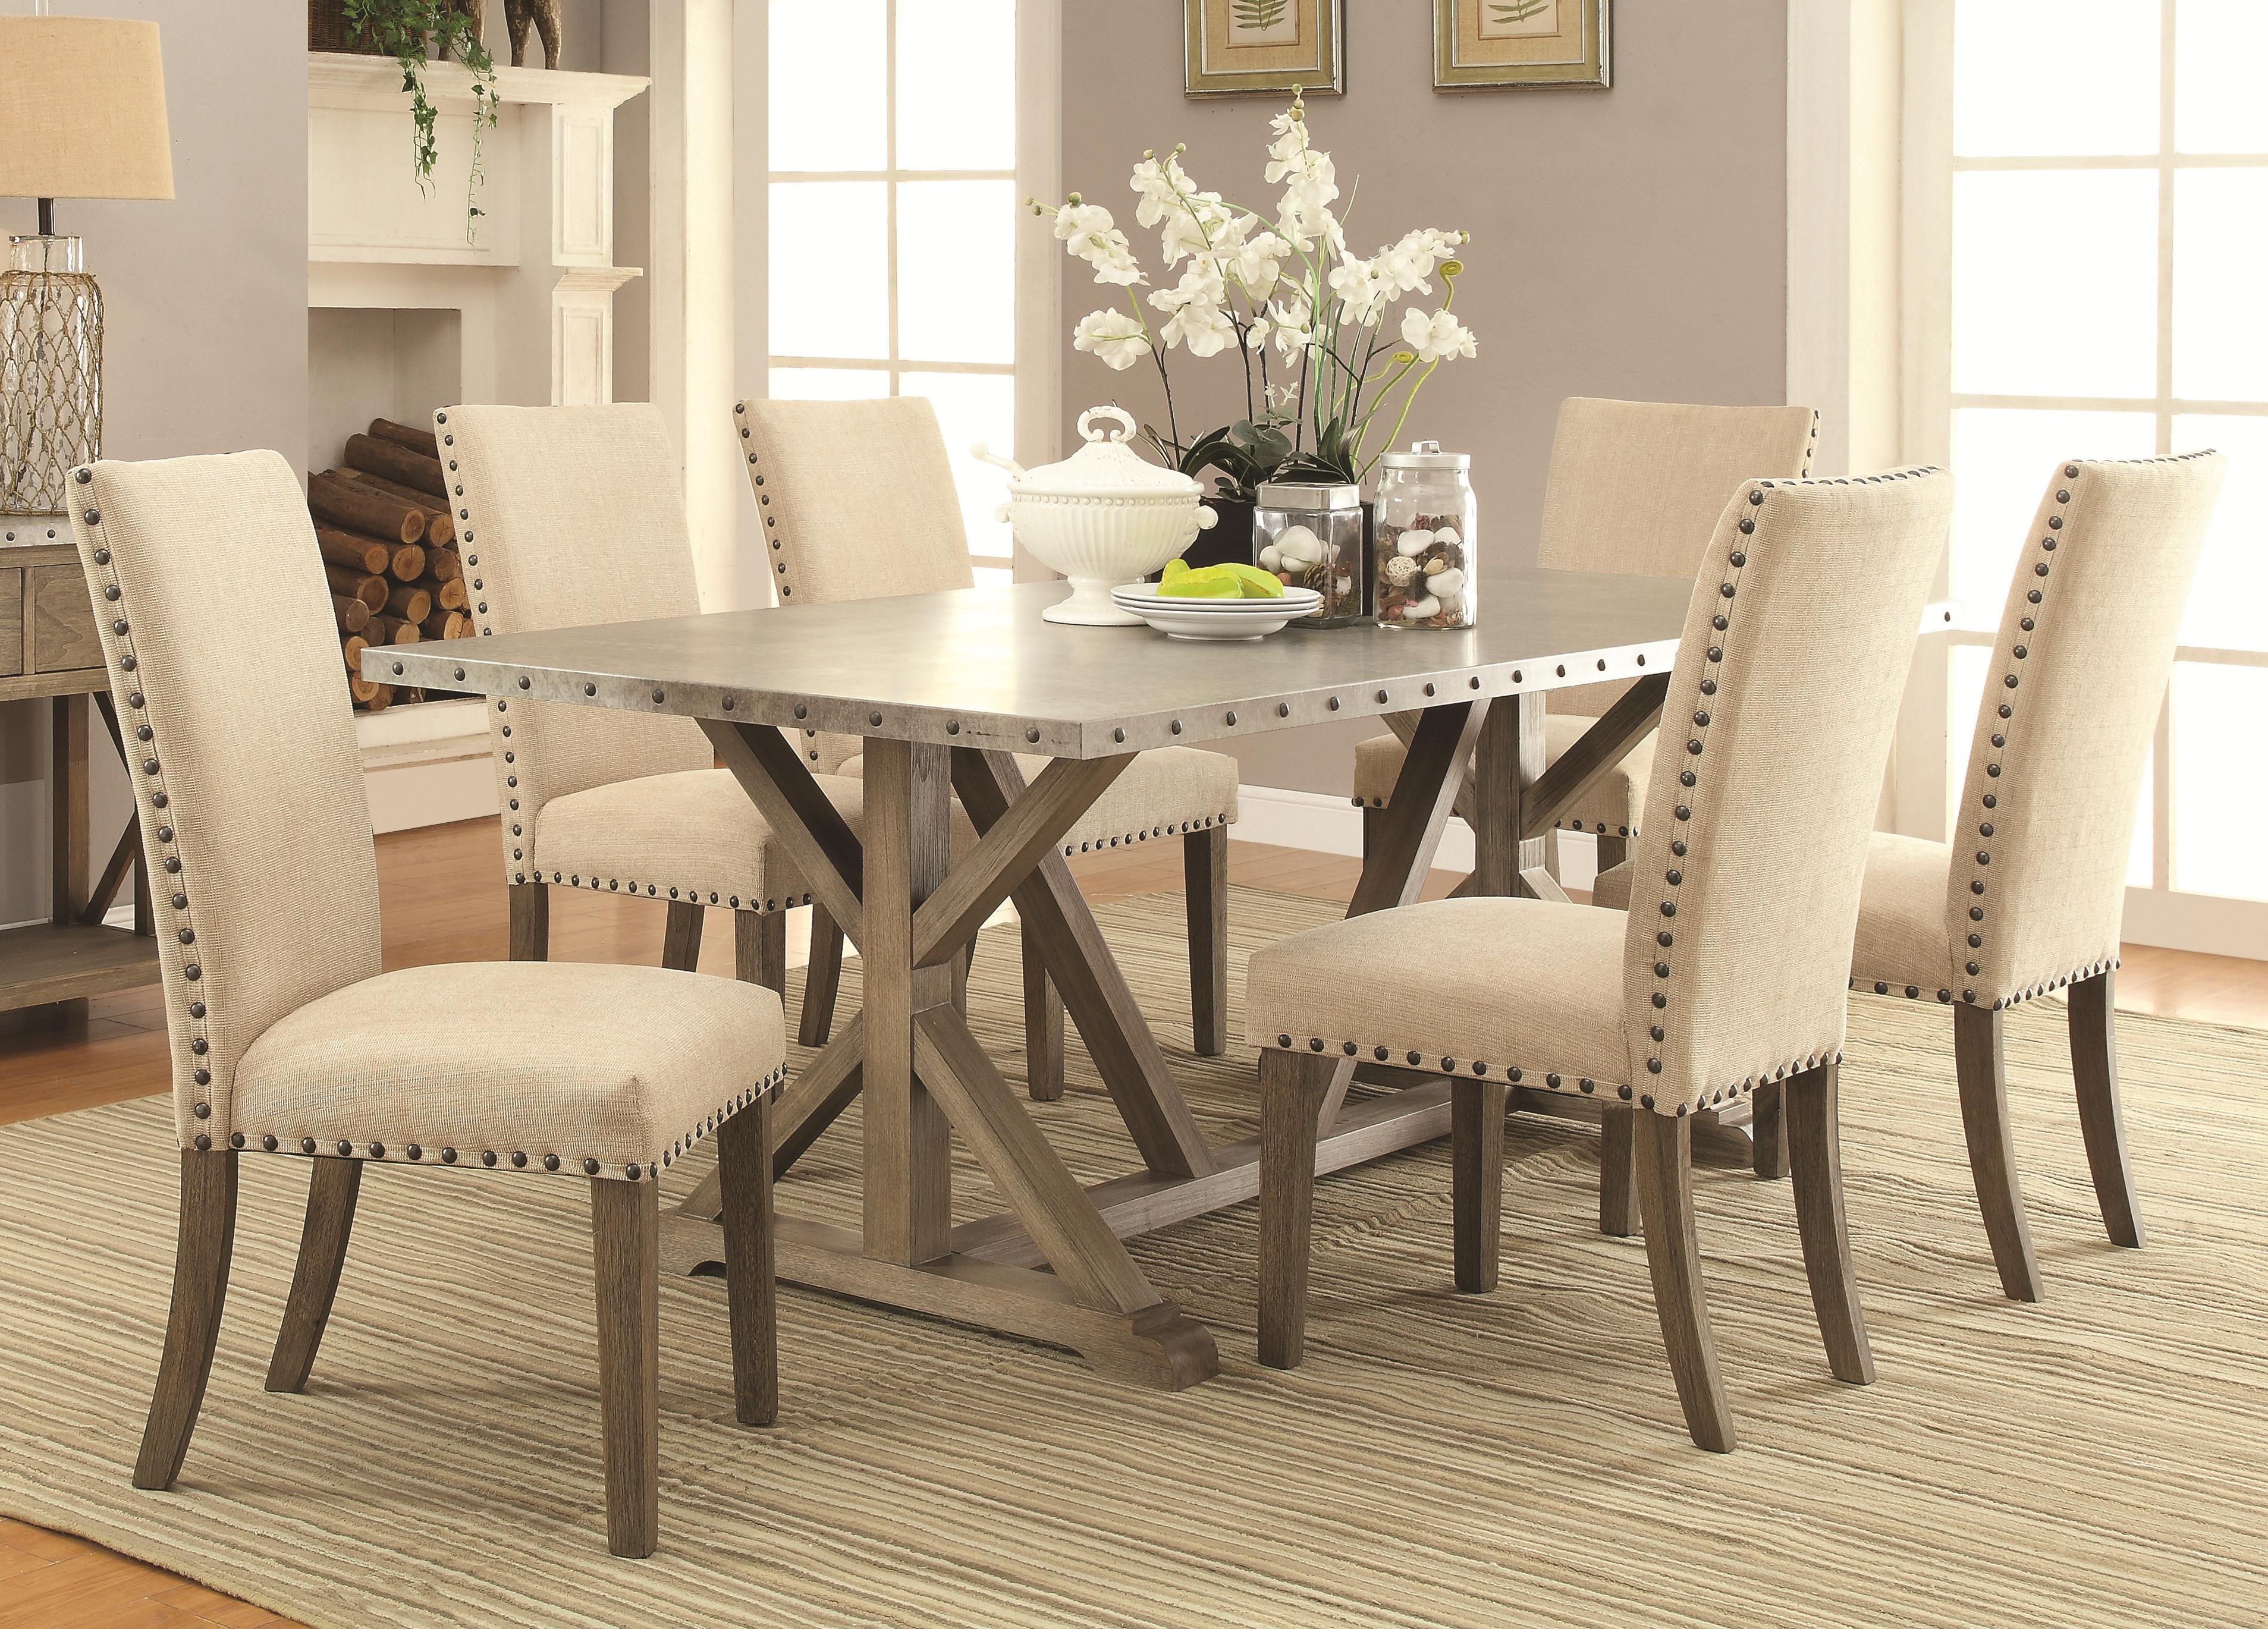 Webber 5 piece transitional style table and chair set with metal top and nailhead trim